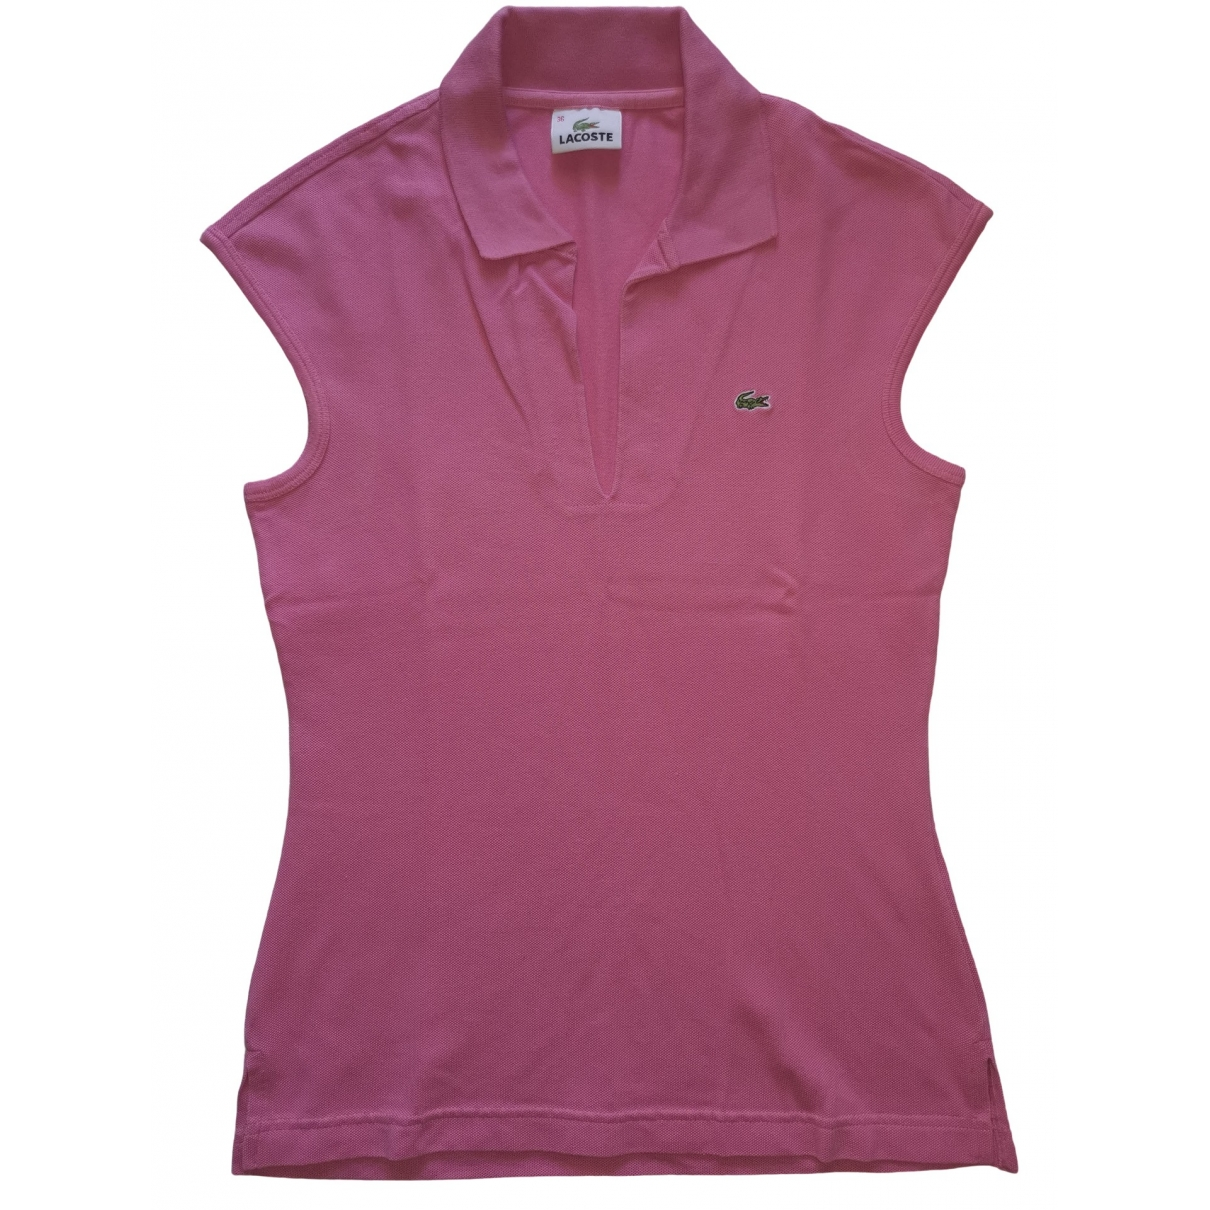 Lacoste \N Pink Cotton  top for Women 36 FR